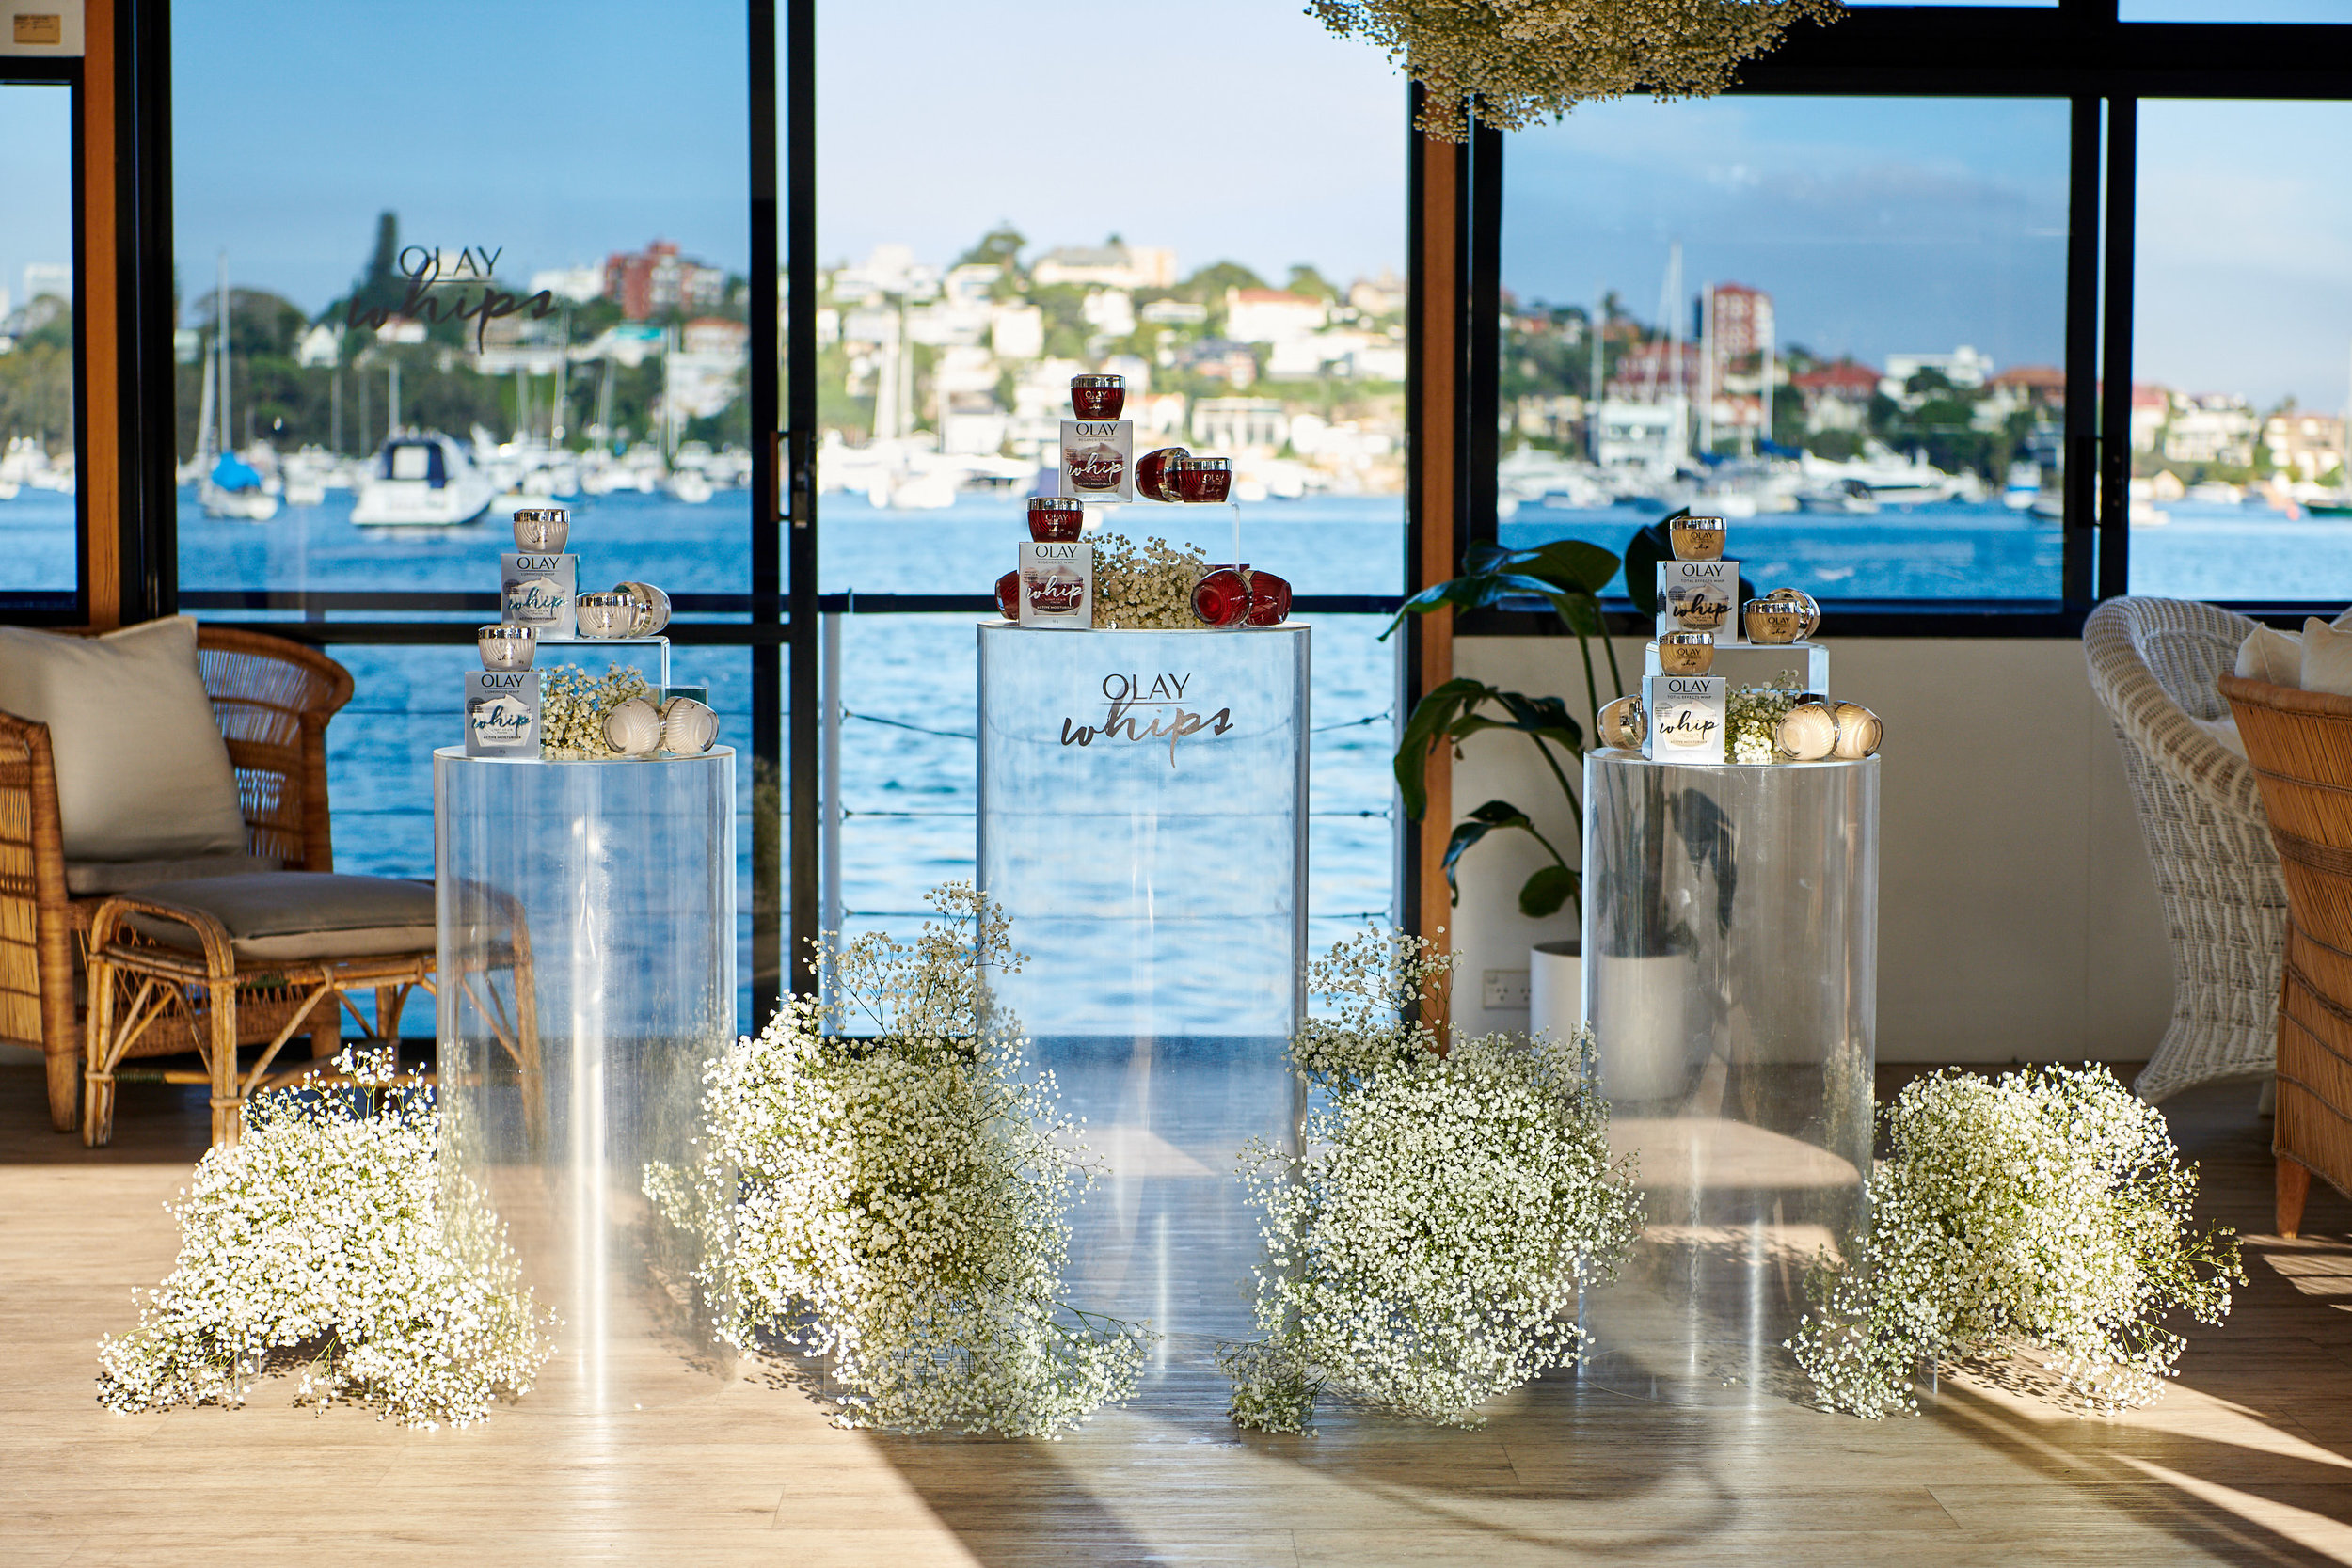 Hamptons Sydney events hire boat sydney harbour .jpg